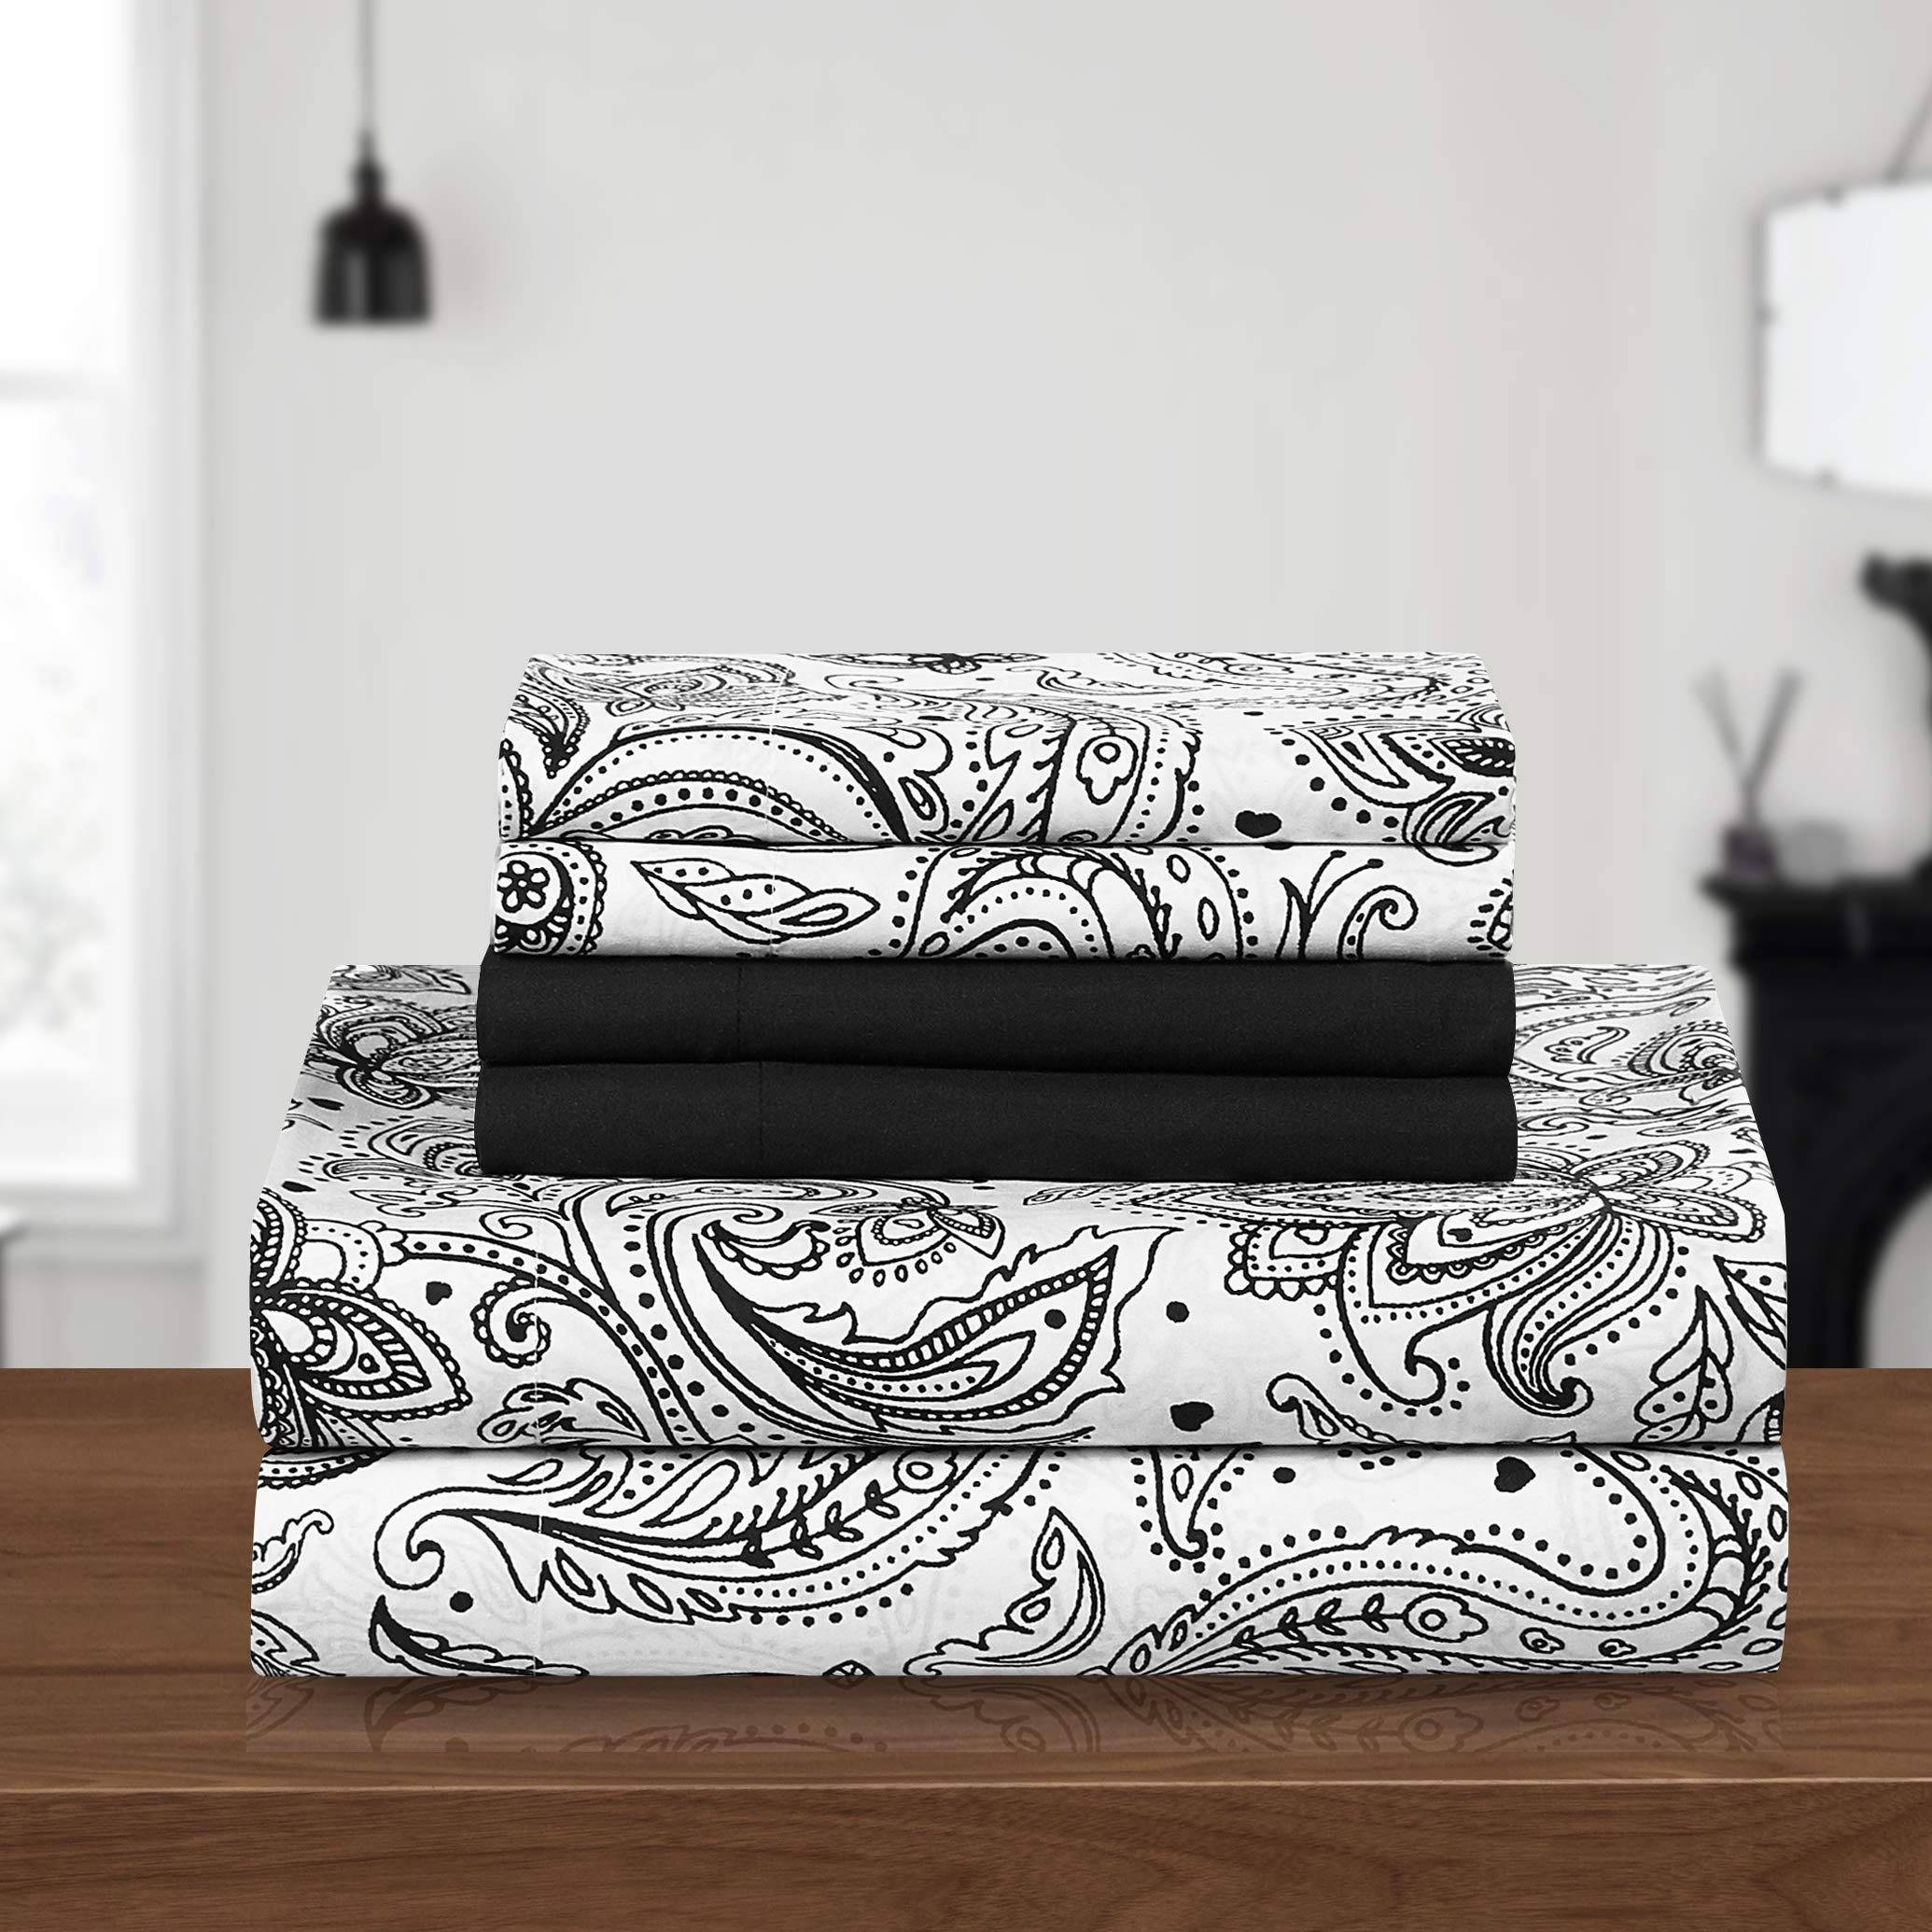 PH 6 Piece Queen Black Printed Sheet Set, Country & Vintage Style, Microfiber Material, Paisley Pattern Deep Pockets, Fully Elasticized Fitted, Machine Wash - Floral Print